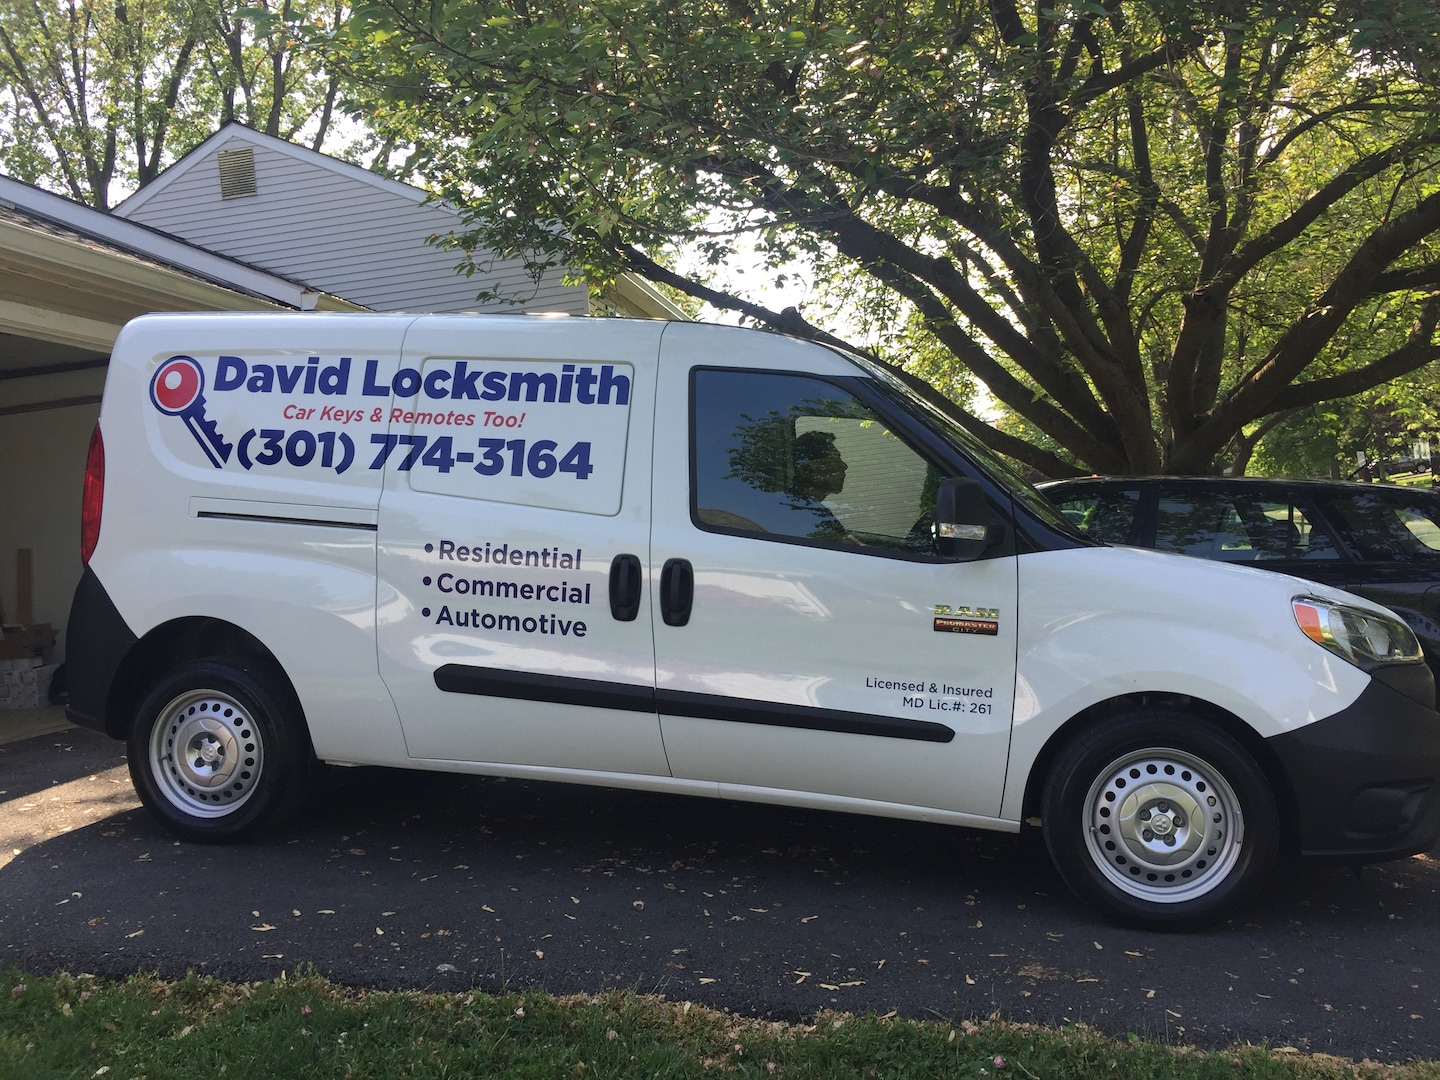 David Locksmith, LLC